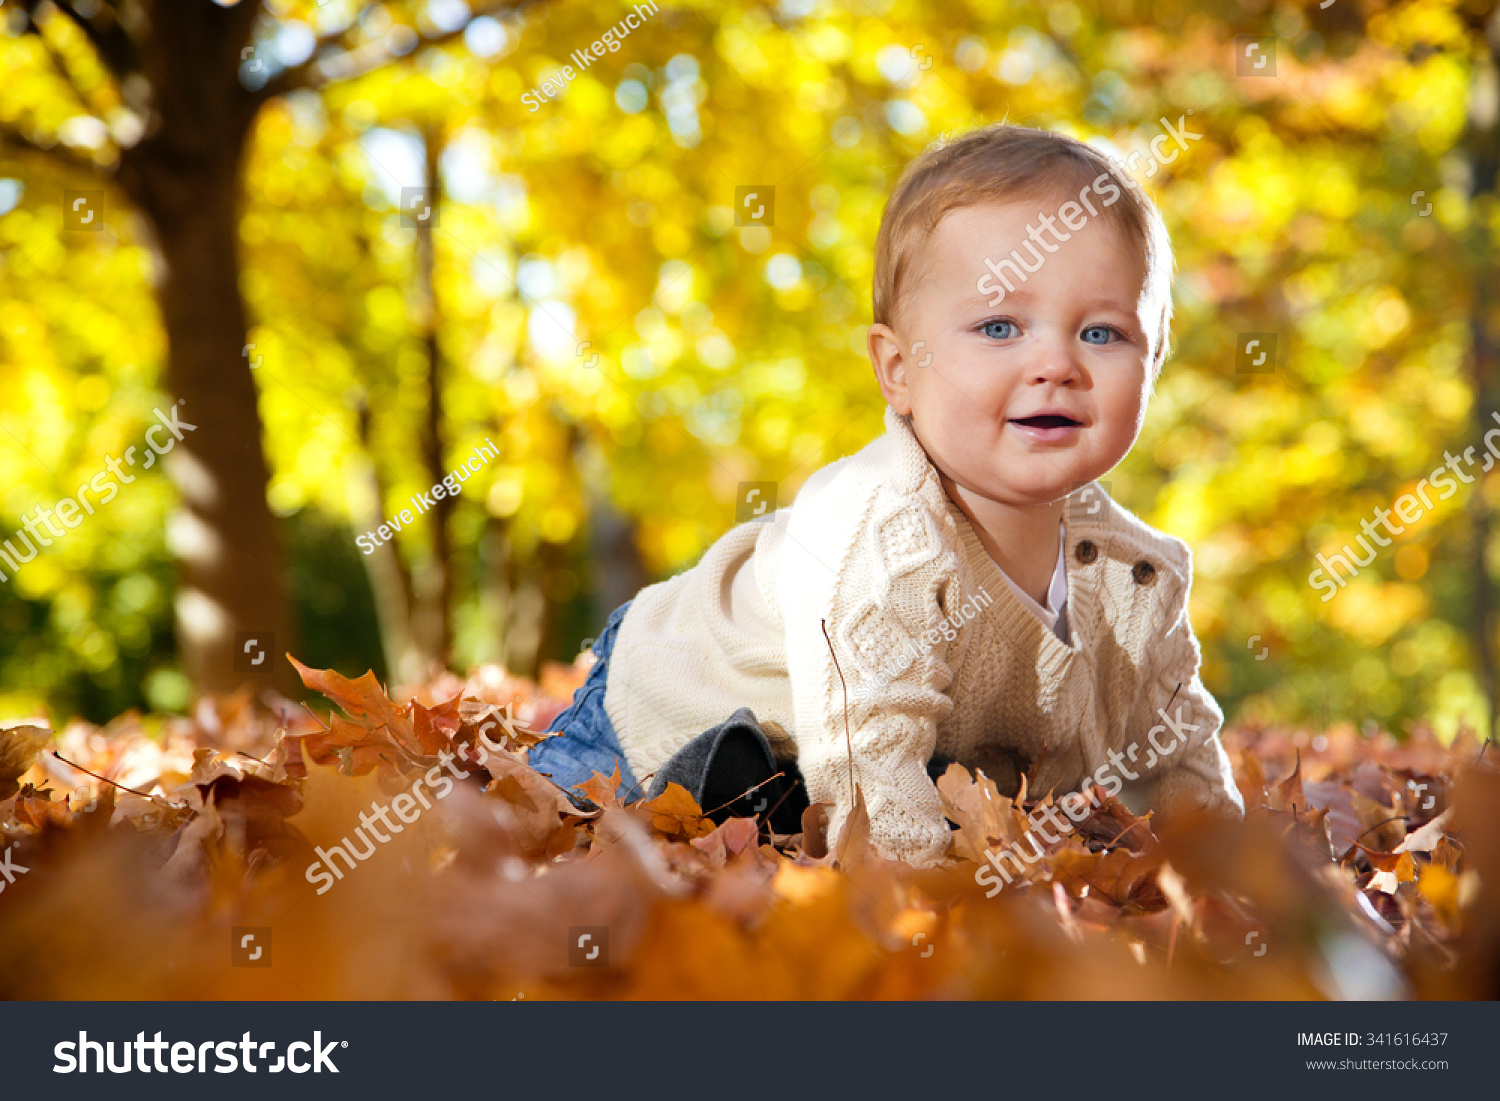 Baby boy in fall leaves